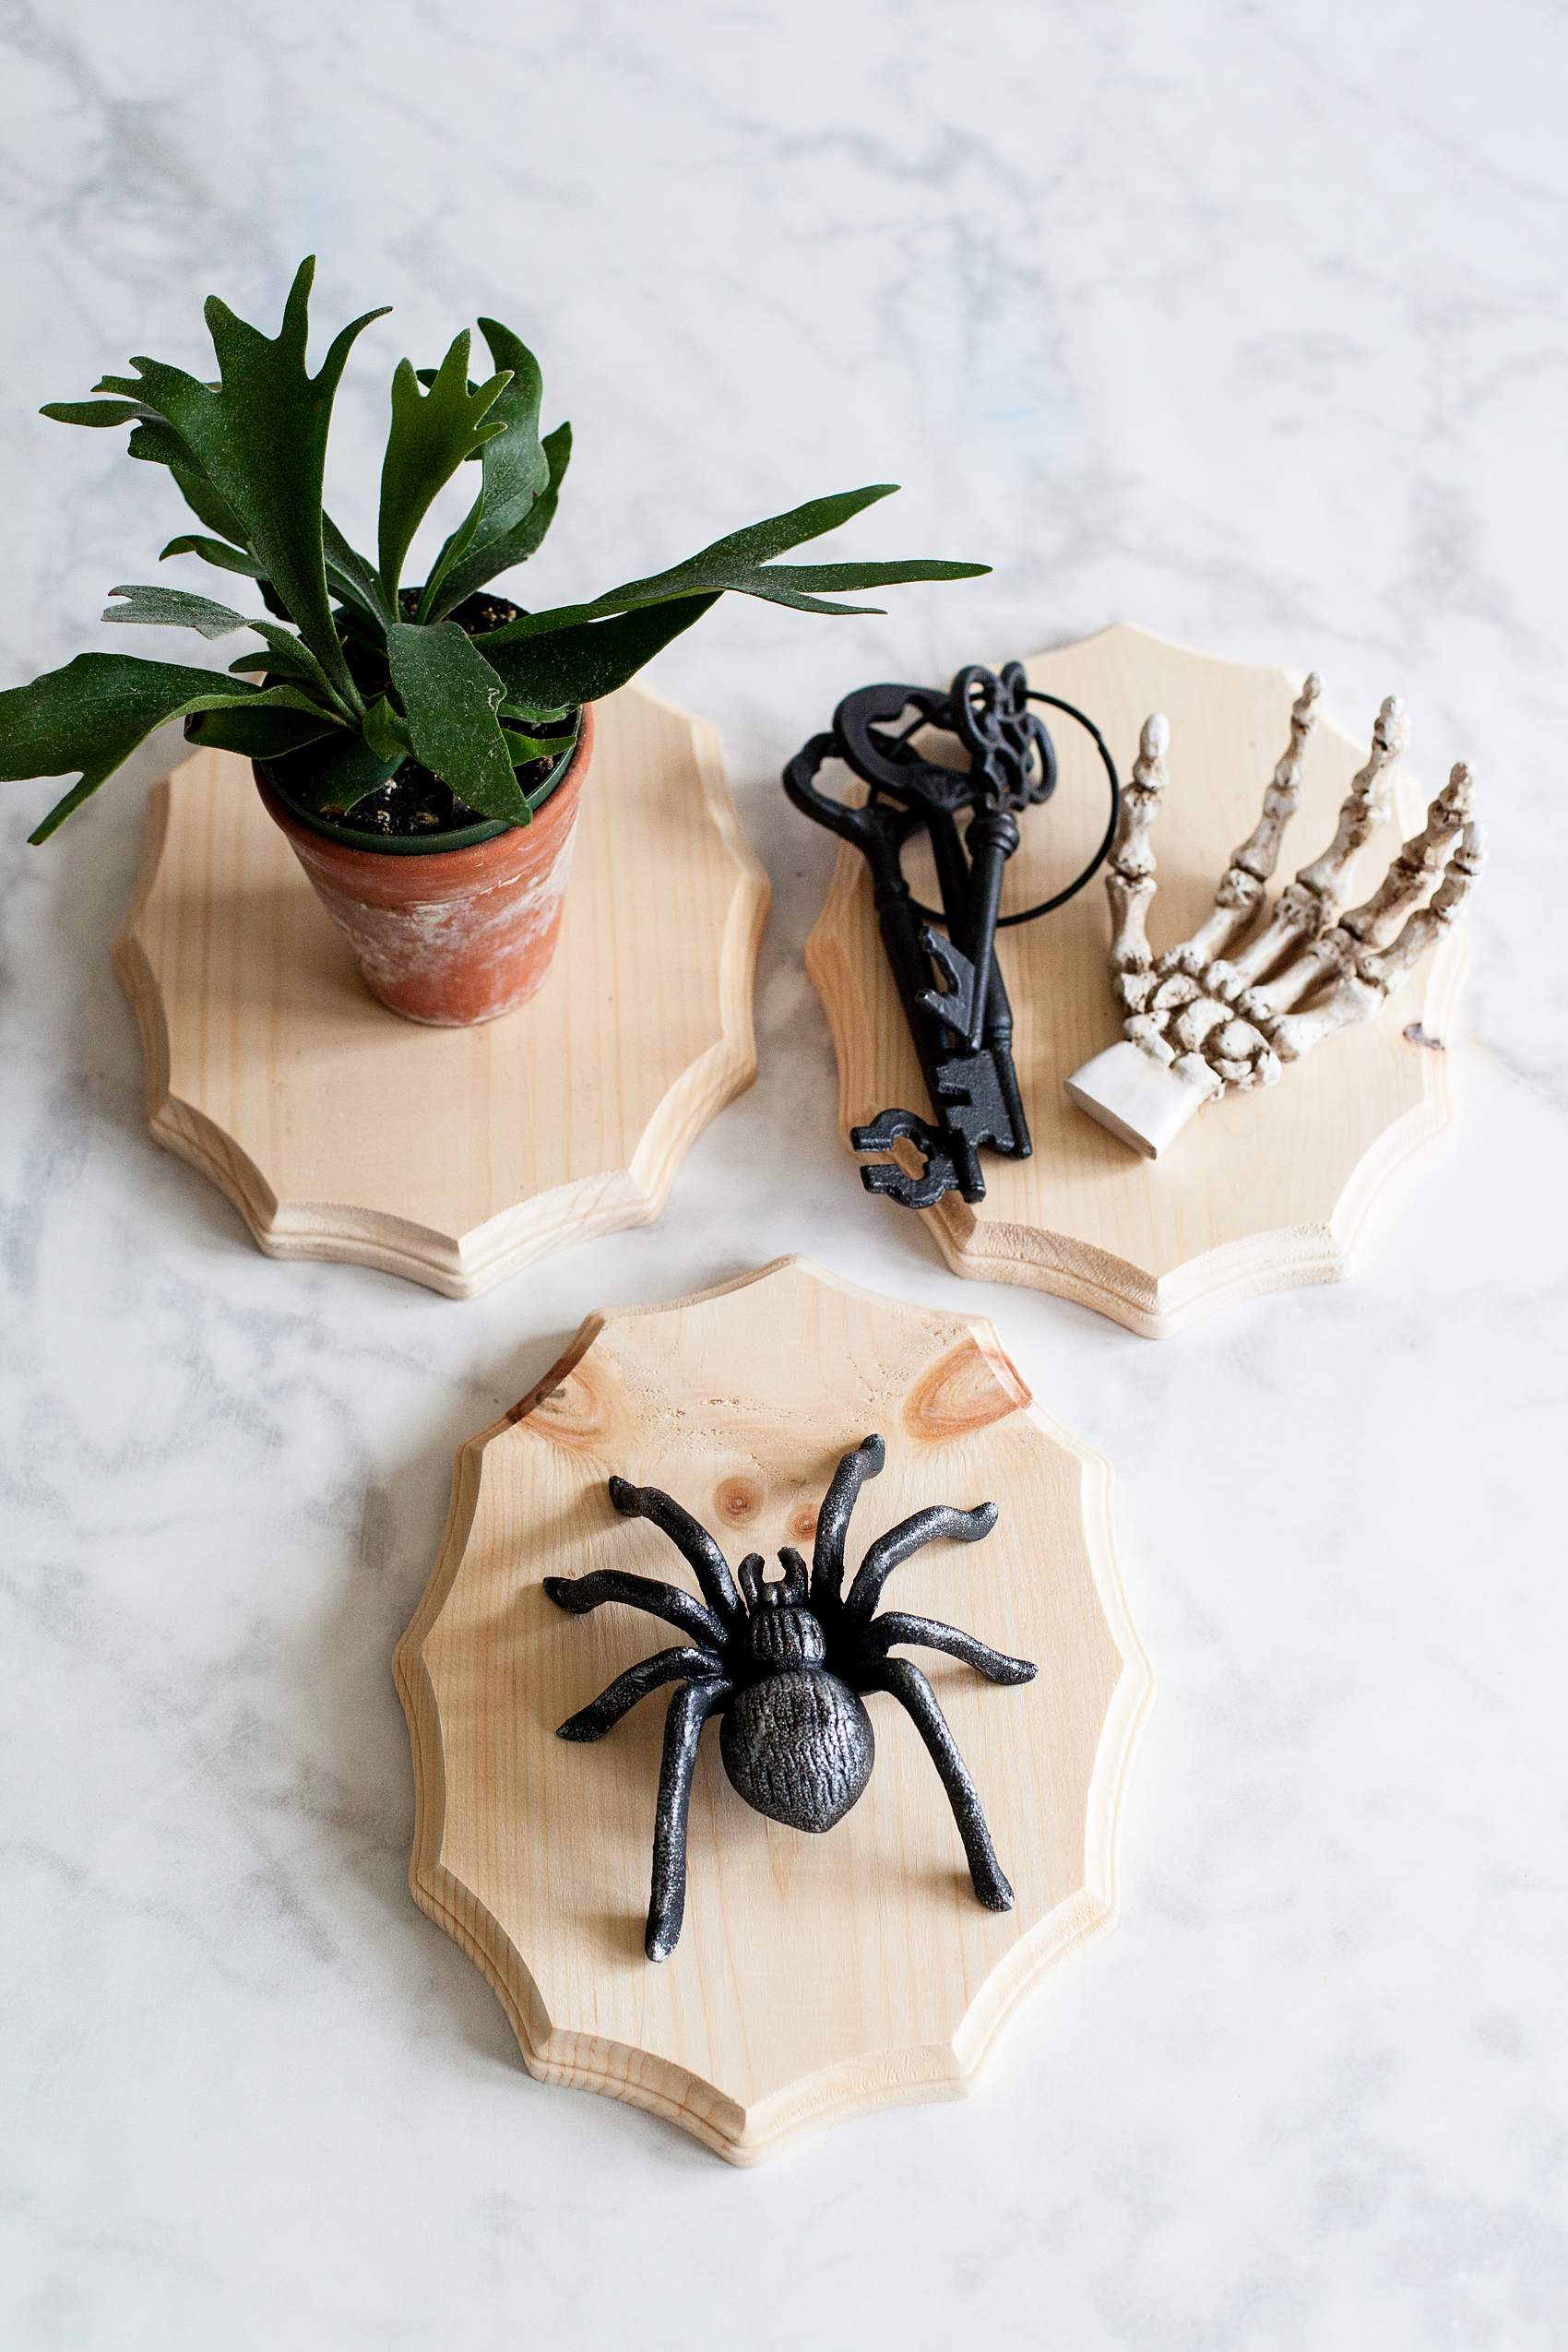 Add a little flair to your spooky Halloween decor with DecoArt! I used their Metallic Lustre to turn simple spooky objects into creepy yet classy taxidermy home decor.